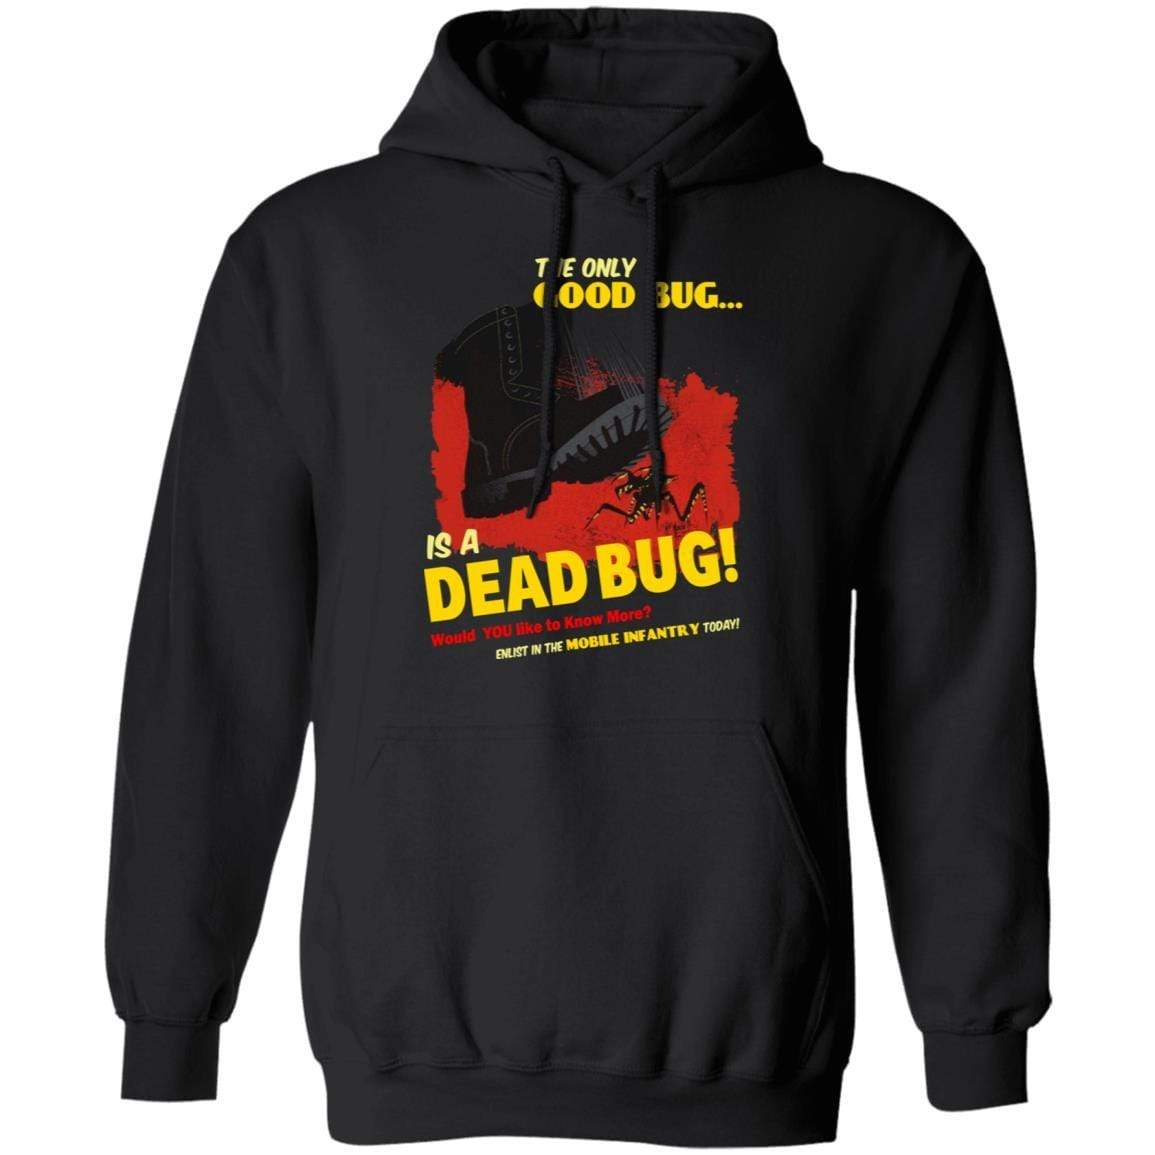 The Only Good Bug Is A Dead Bug Would You Like To Know More Enlist In The Mobile Infantry Today T-Shirts, Hoodies 541-4740-91821632-23087 - Tee Ript